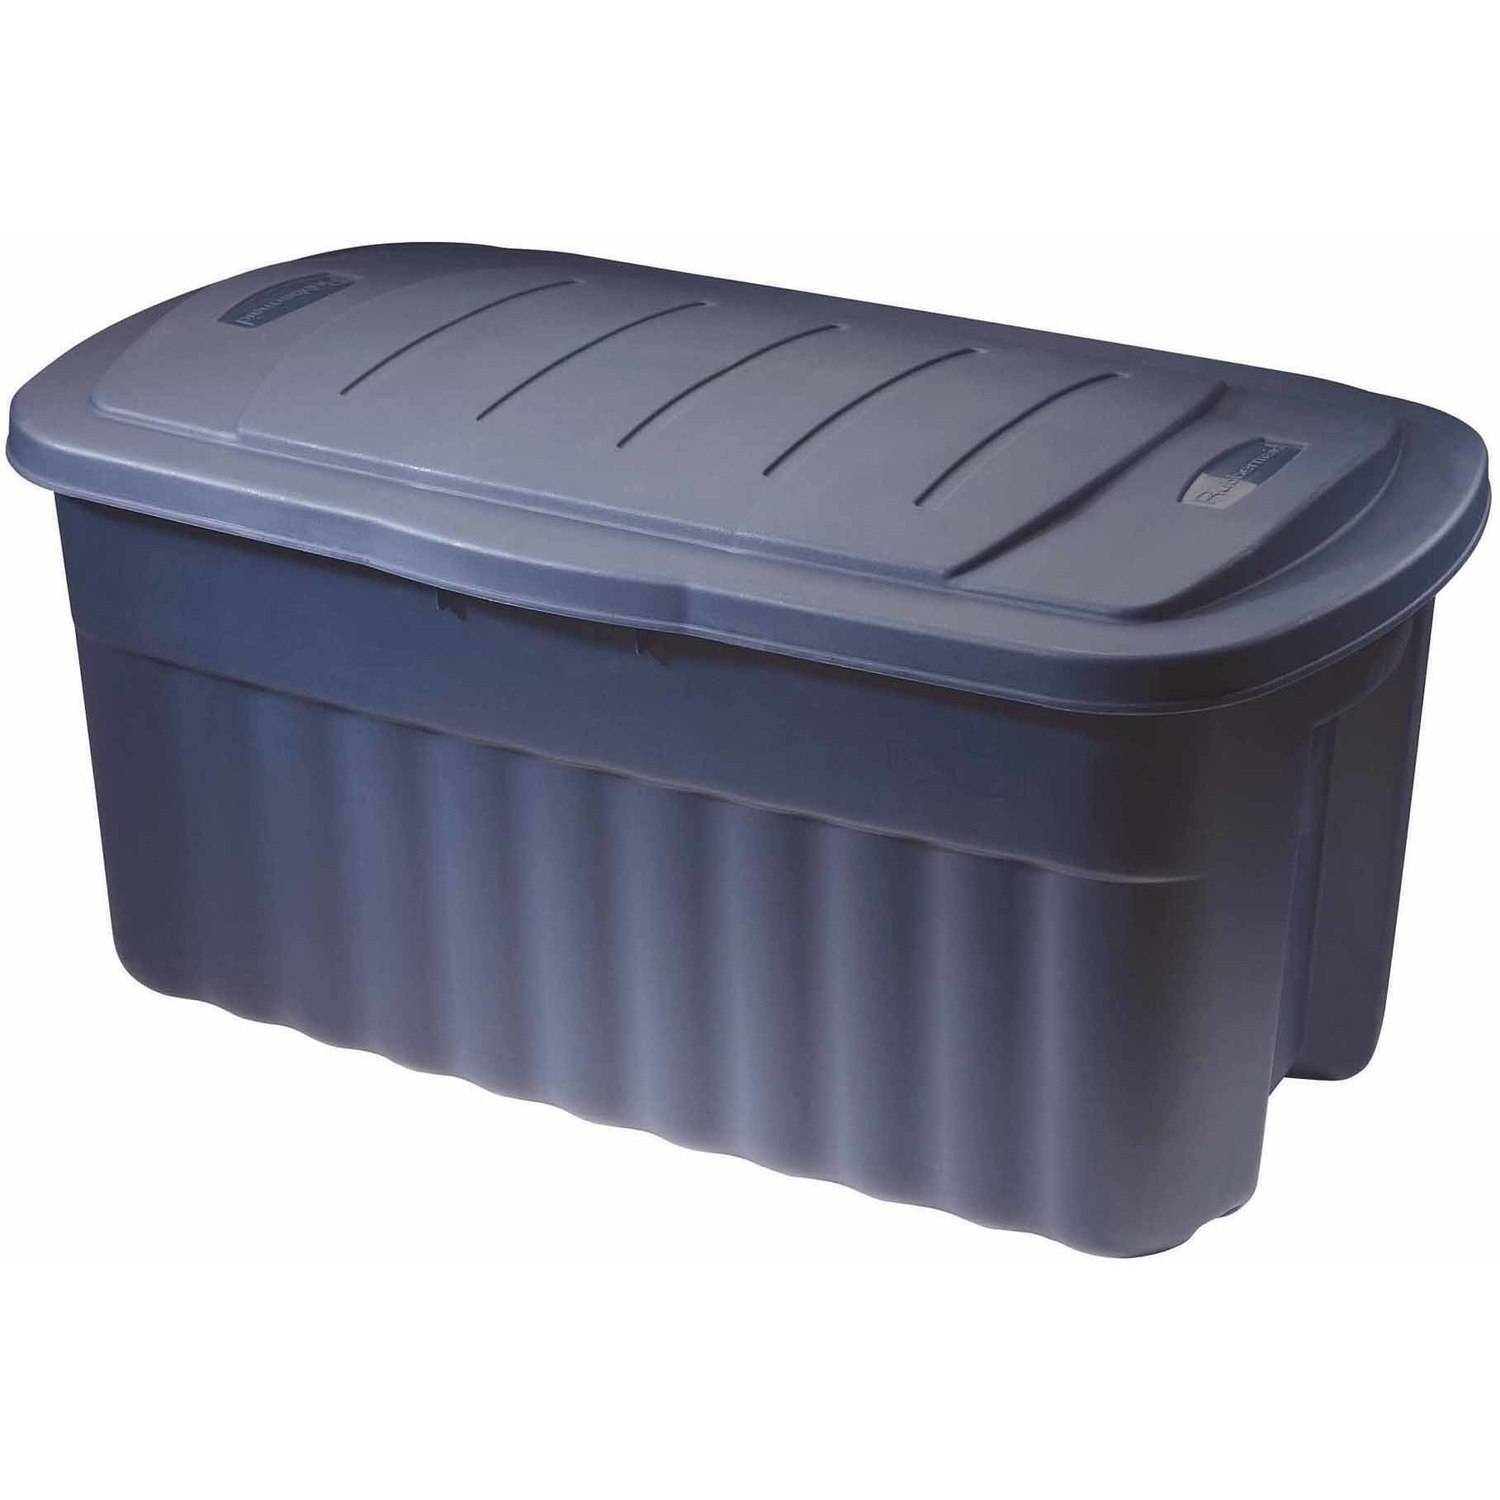 Rubbermaid Roughneck Jumbo Hinged Storage Box, 40 Gal, Dark Indigo Metallic